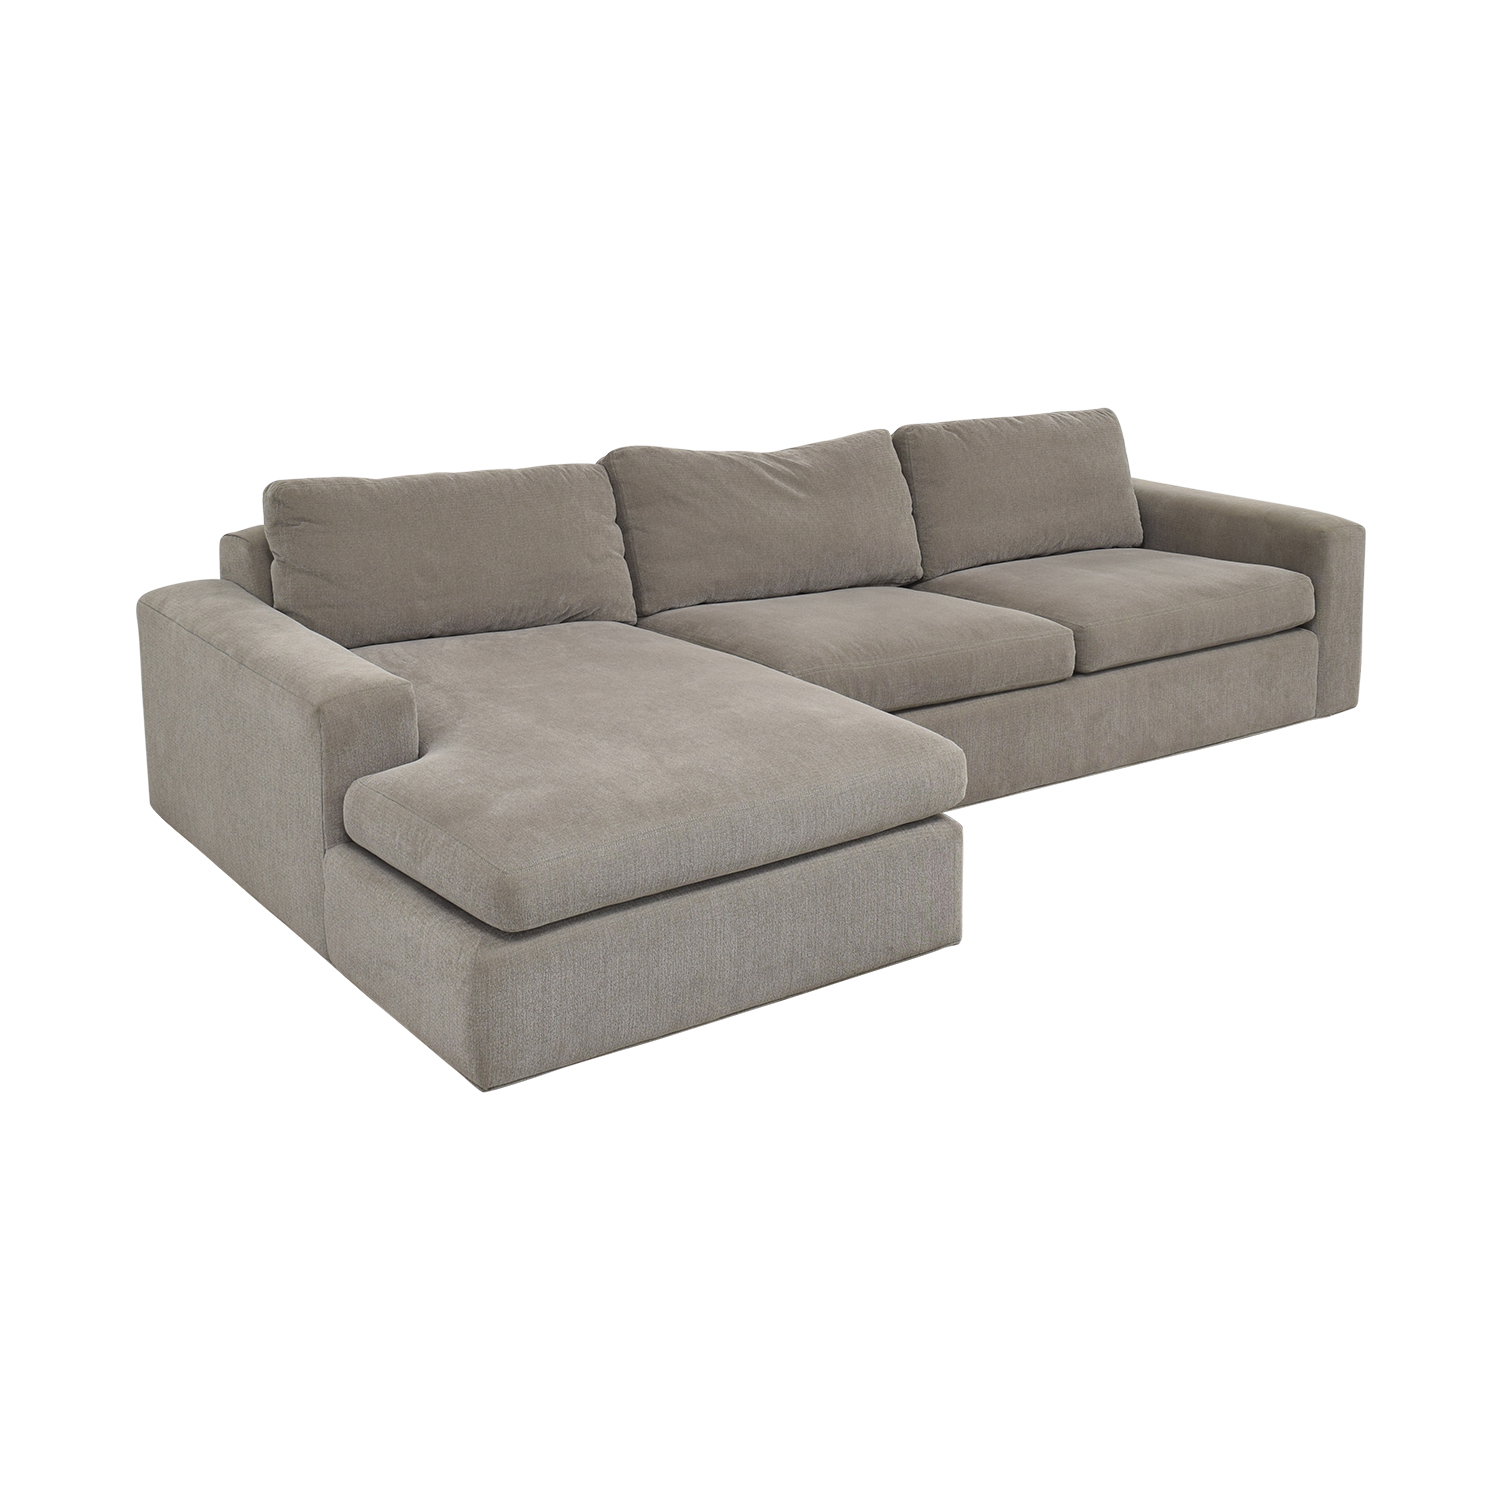 shop Room & Board Chaise Sectional Sofa Room & Board Sofas